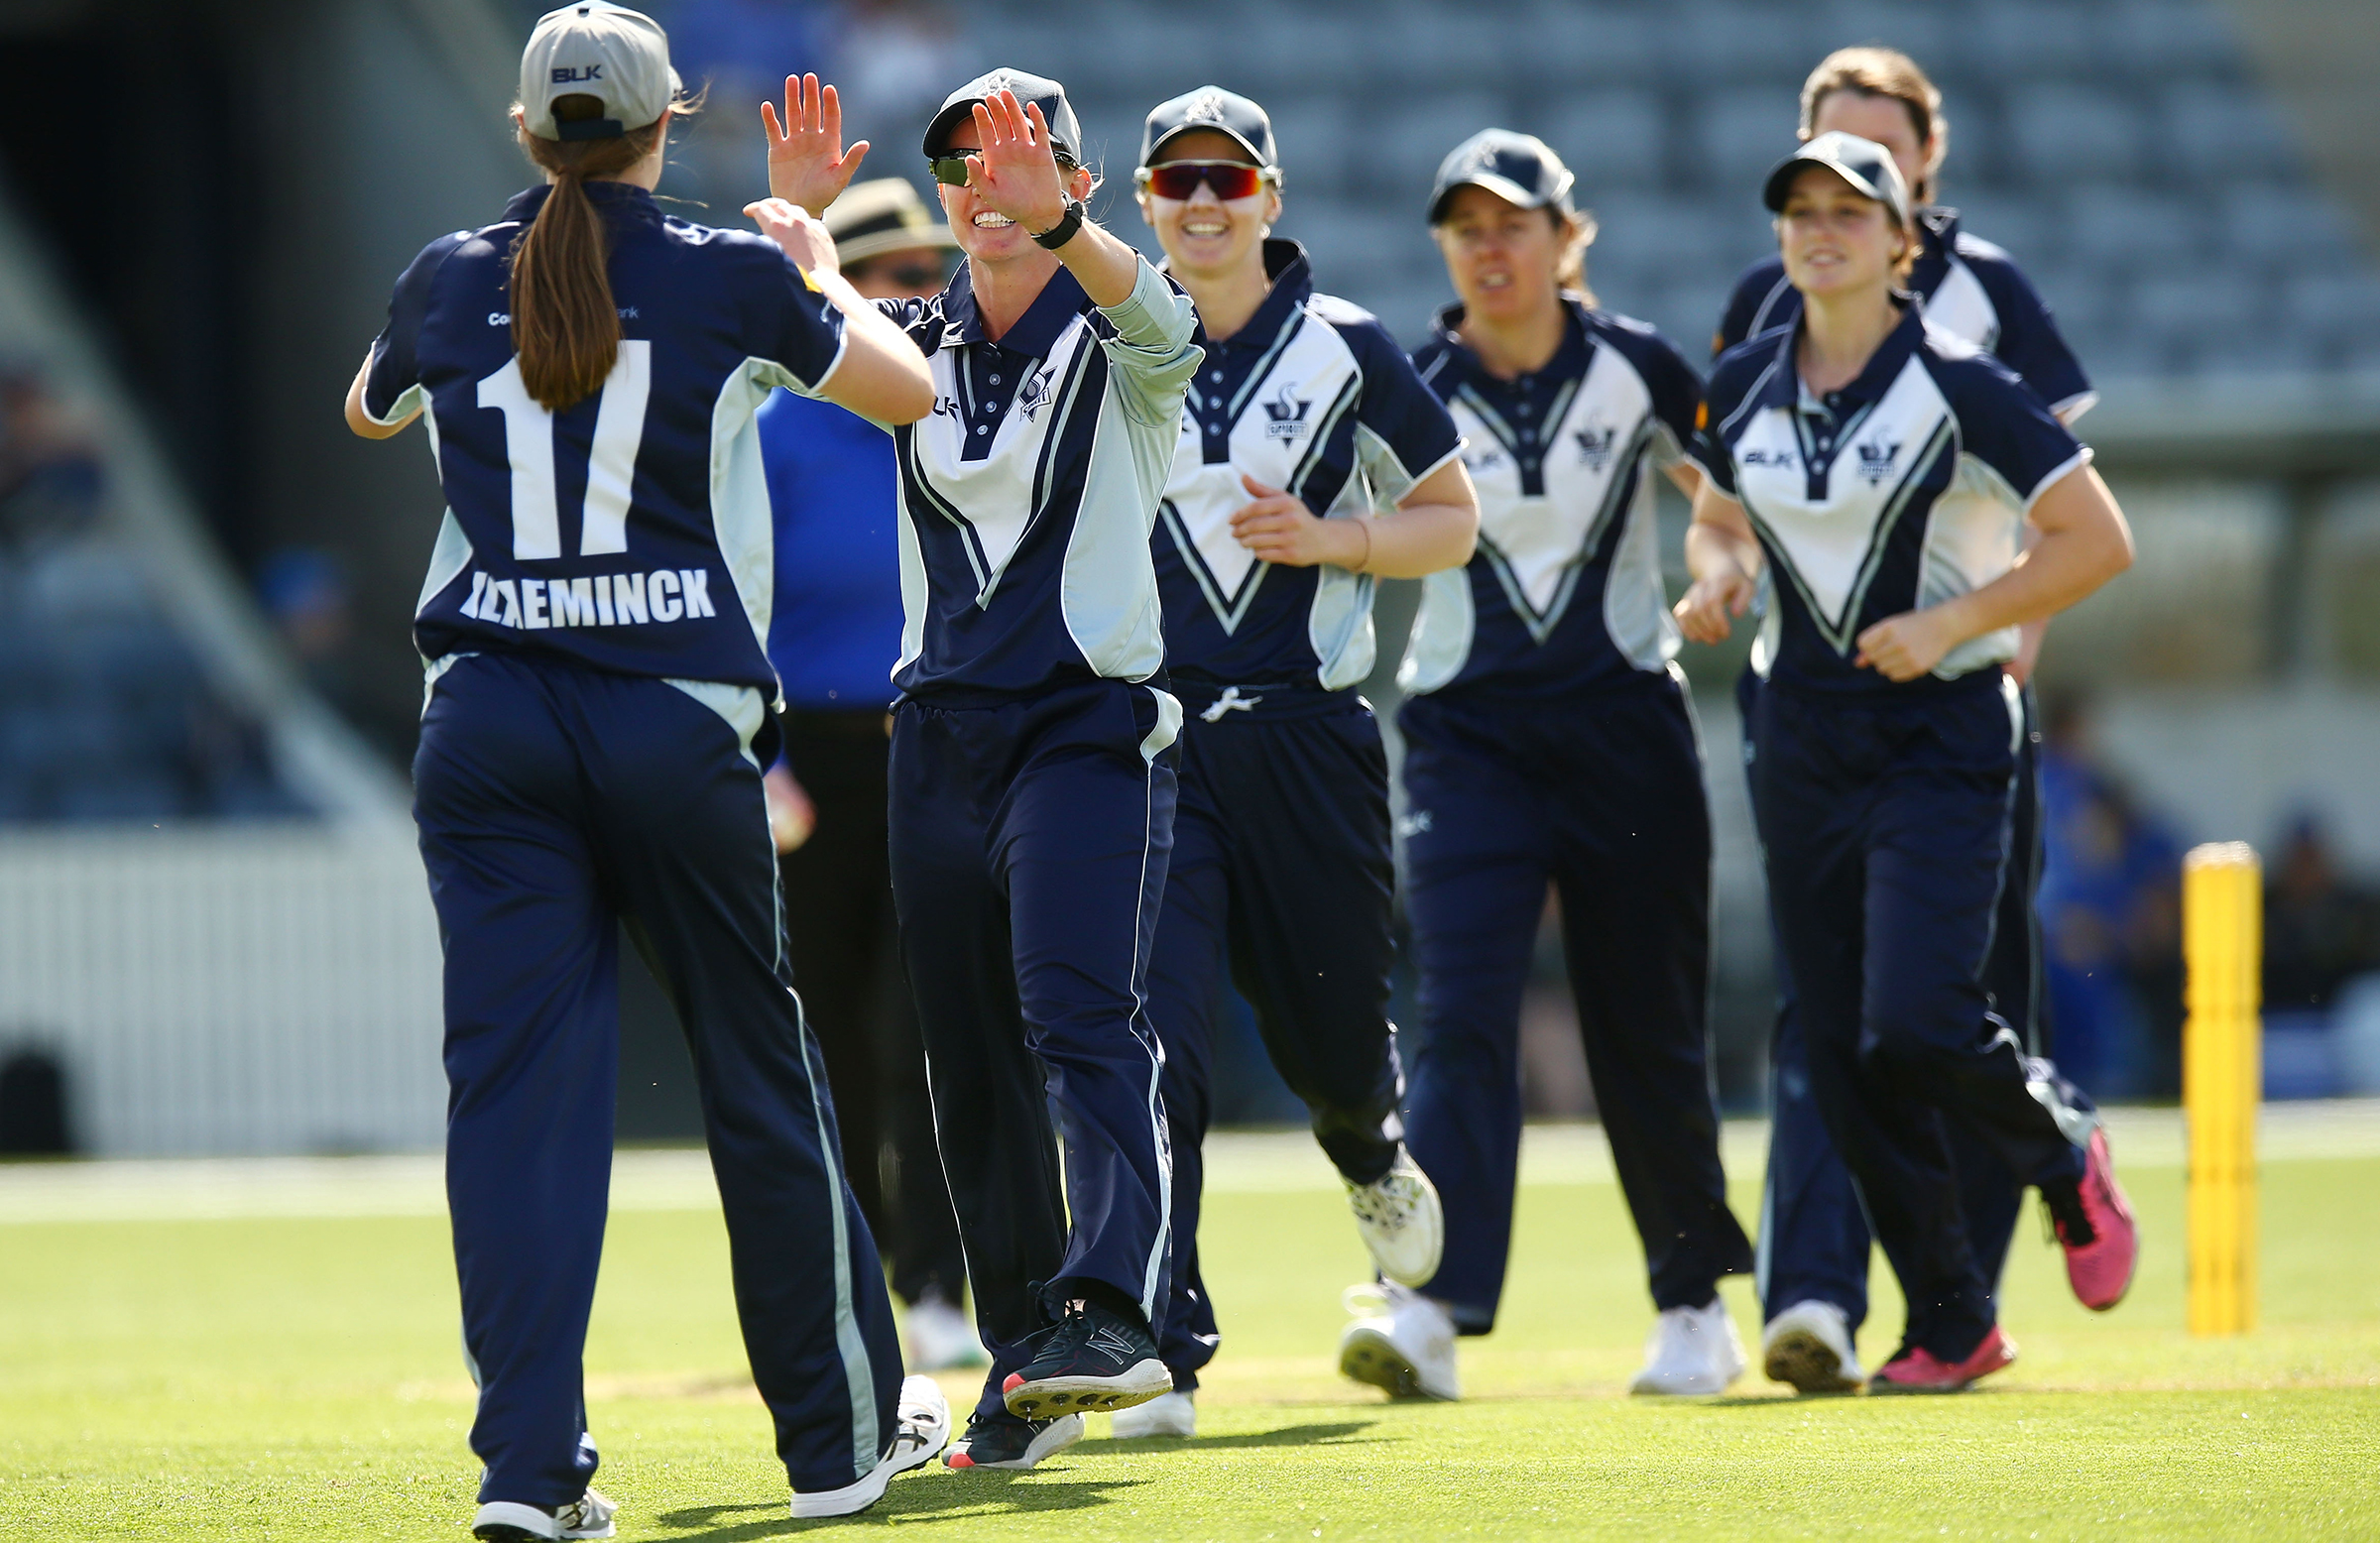 Vlaeminck celebrates a catch with her VicSpirit teammates in her WNCL debut // Getty